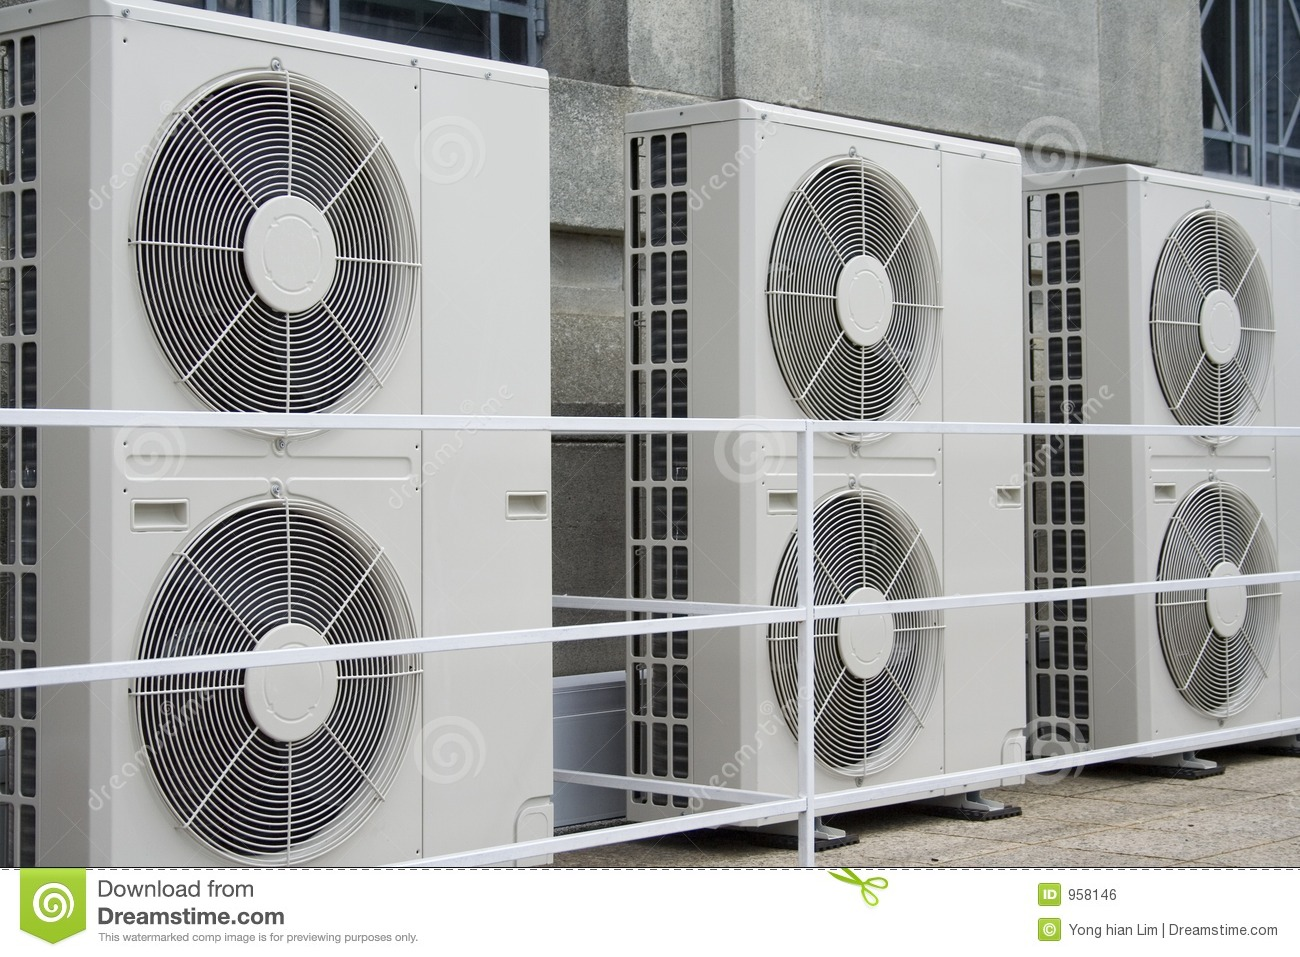 samsung ducted air conditioning installation guide